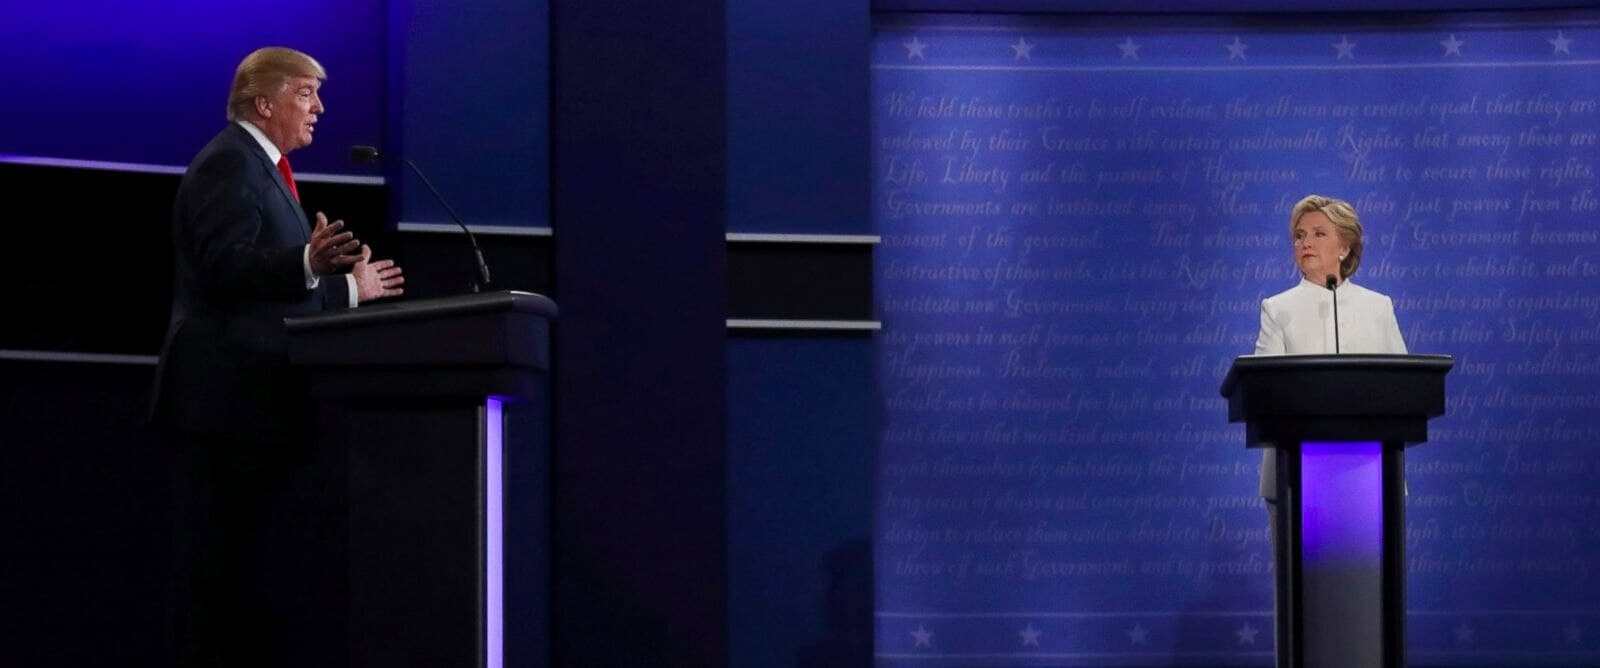 In this cropped photo, Donald Trump and Hillary Clinton square off at the final presidential debate held in Las Vegas on Wednesday, Oct. 19, 2016. (Photo: Carlos Barria/Reuters)